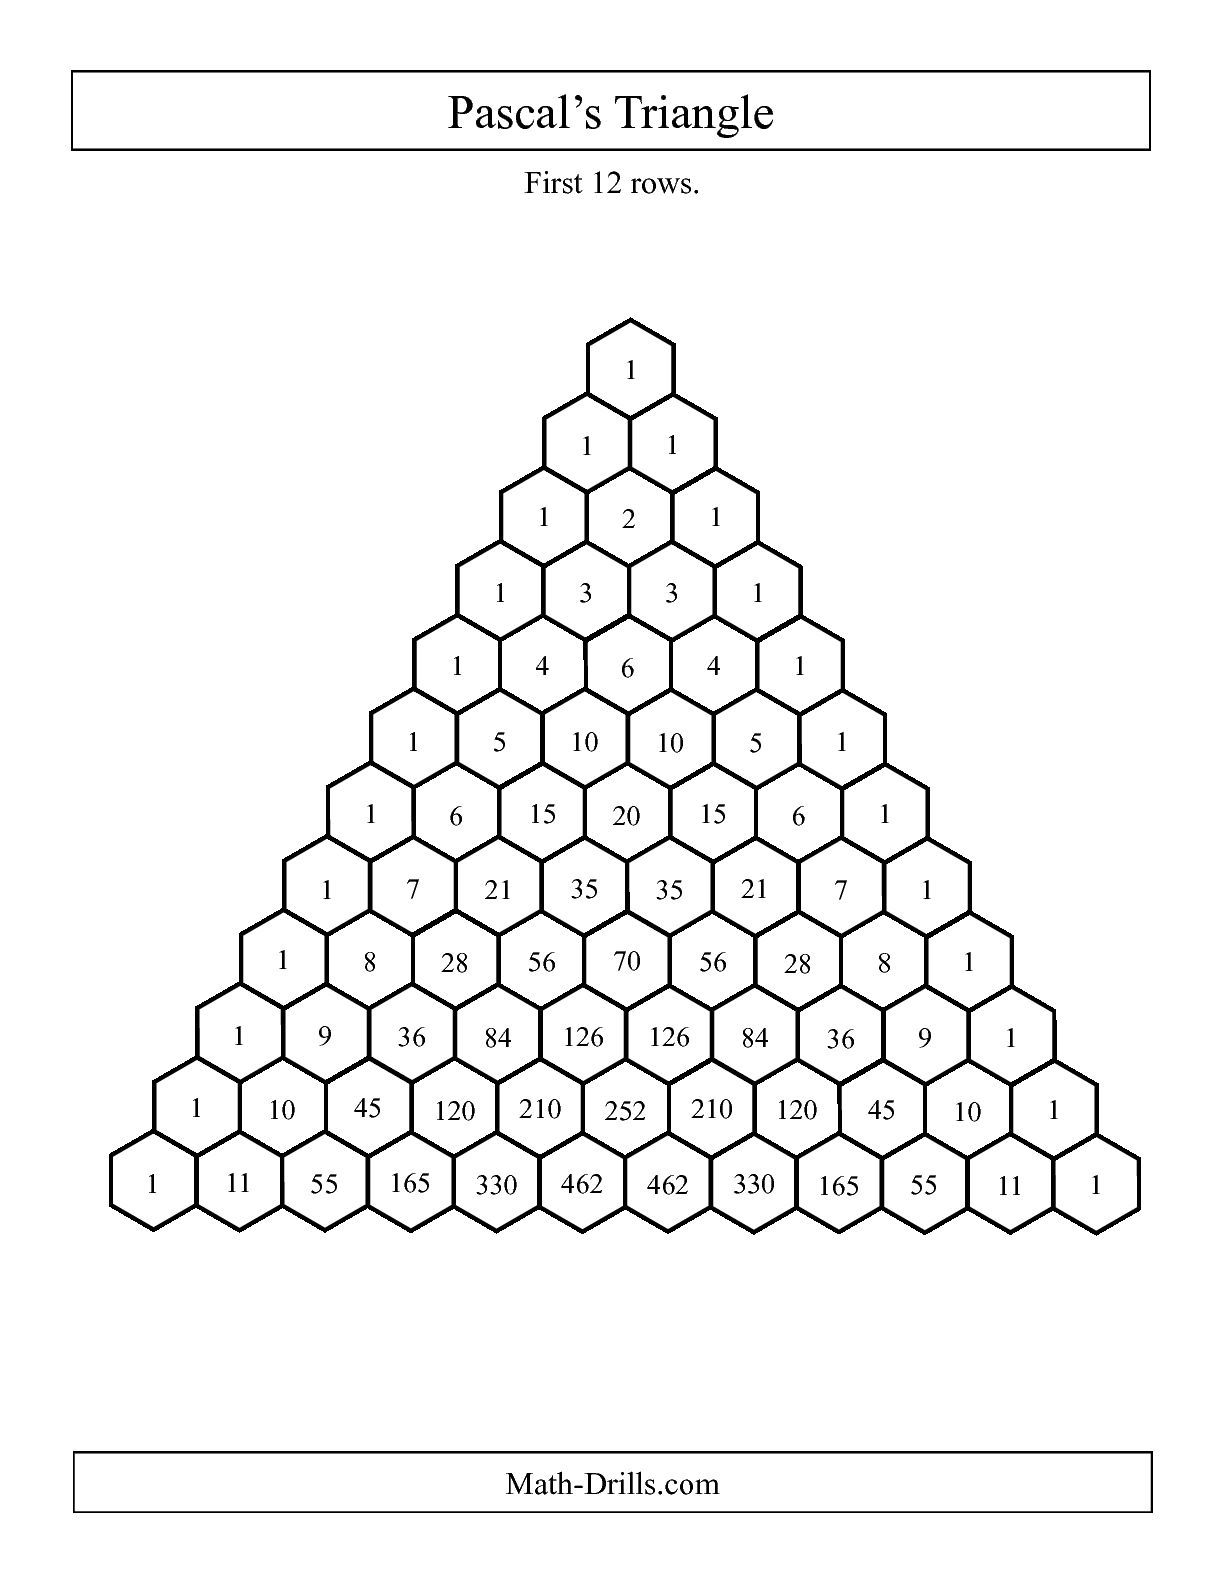 Worksheets Sierpinski Triangle Worksheet the pascals triangle first 12 rows a mathematics rows